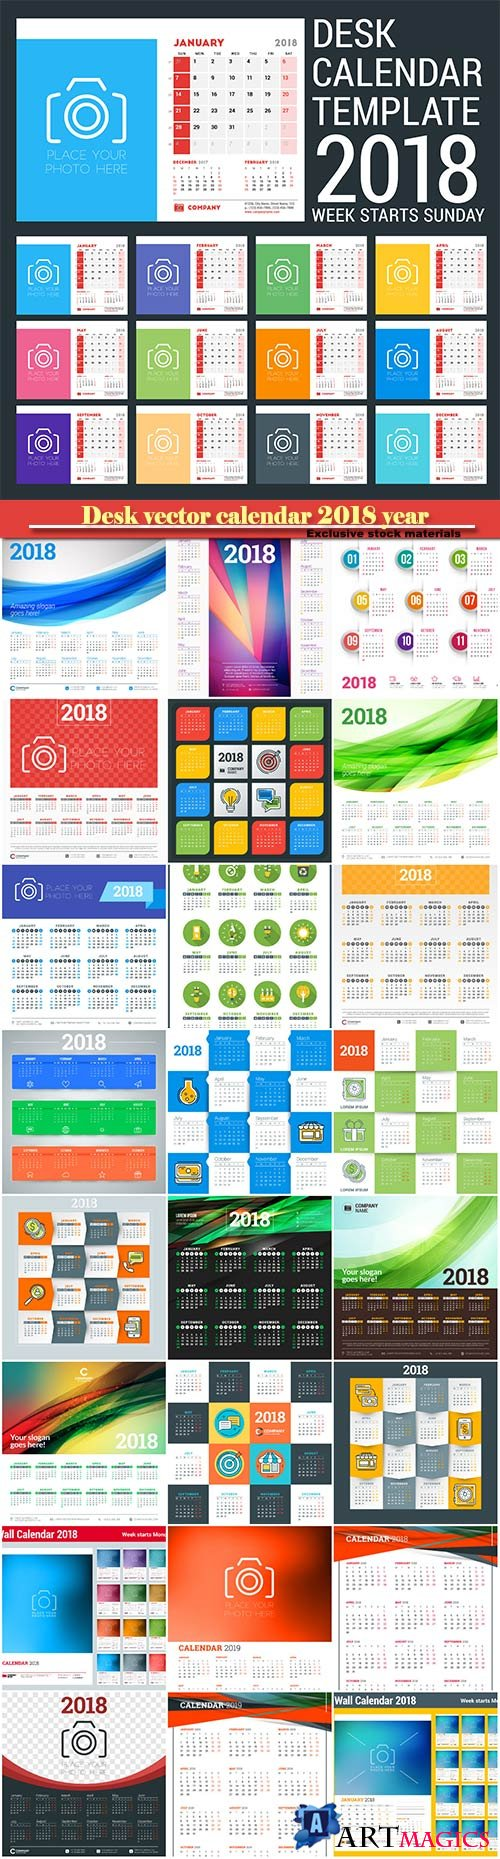 Desk vector calendar design templatefor 2018 year